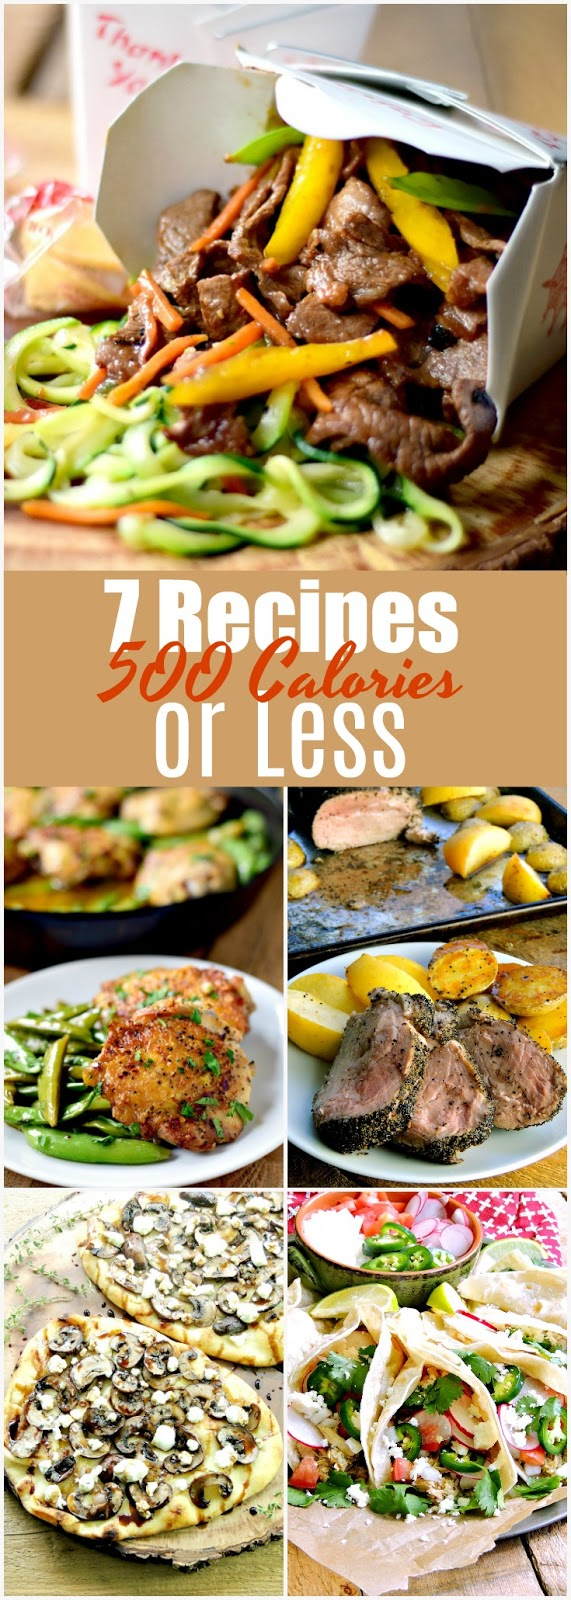 A weeks worth of recipe that are 500 calories or less. #healthy #lowcalorie #dietfriendly #kidfriendly #easy #recipe | bobbiskozykitchen.com